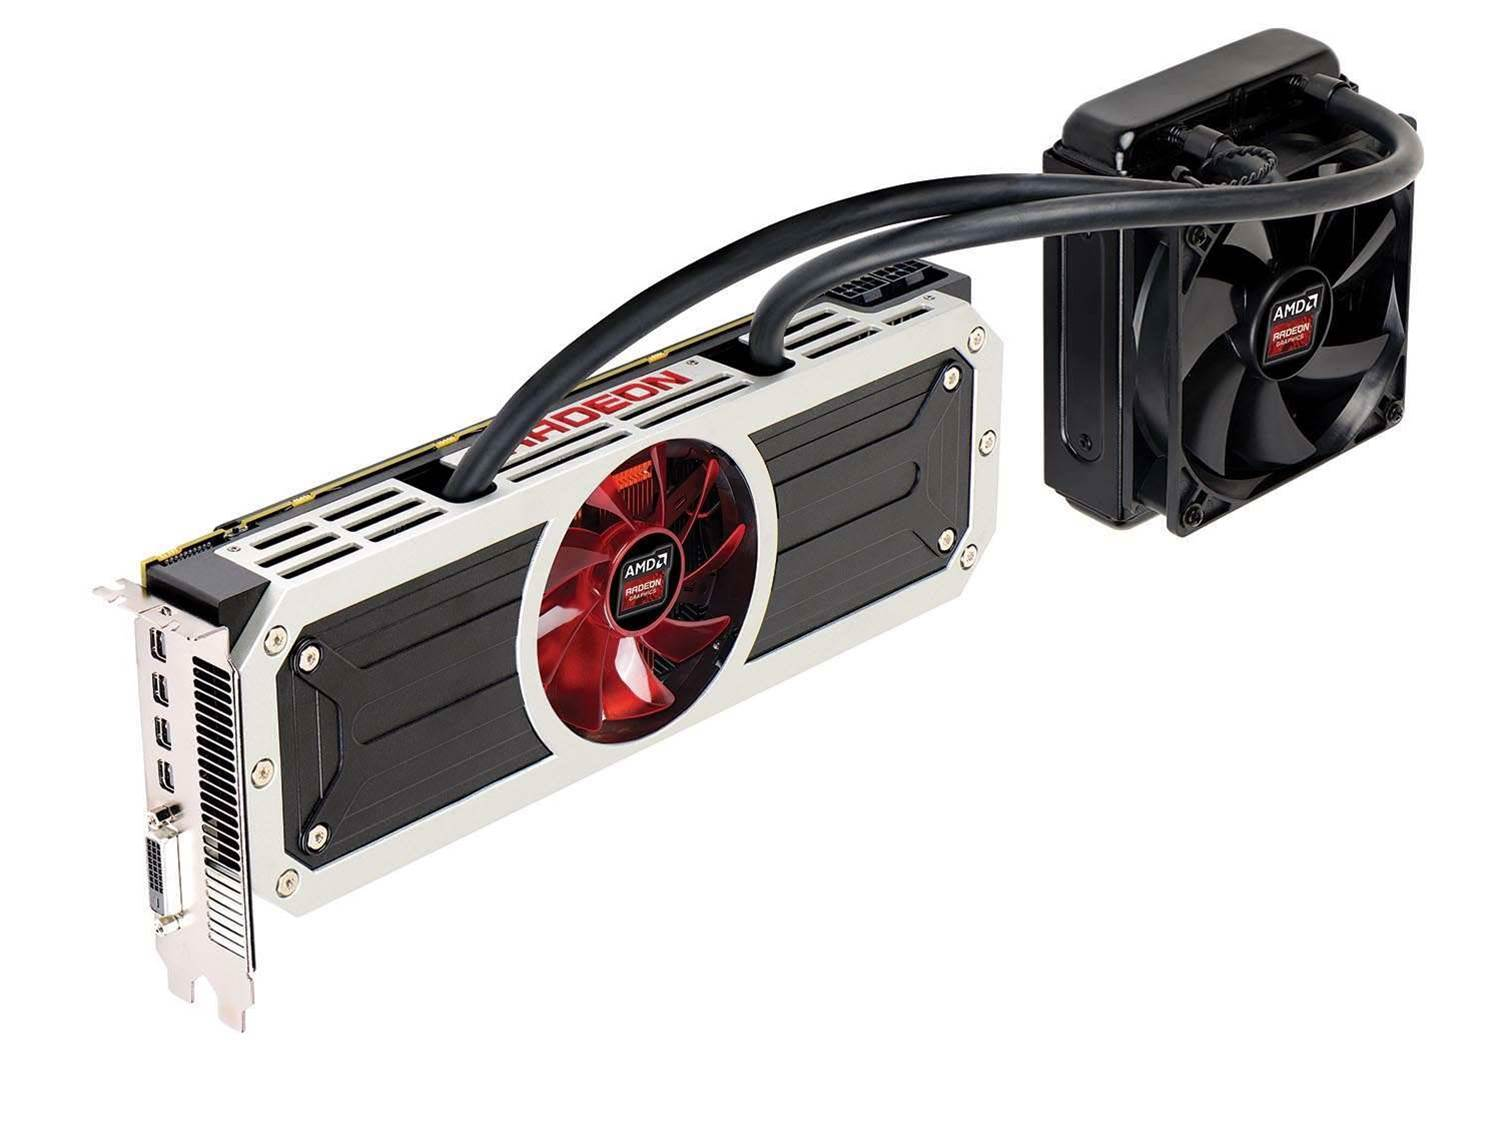 AMD announces $1900 dual-core, liquid cooled video card